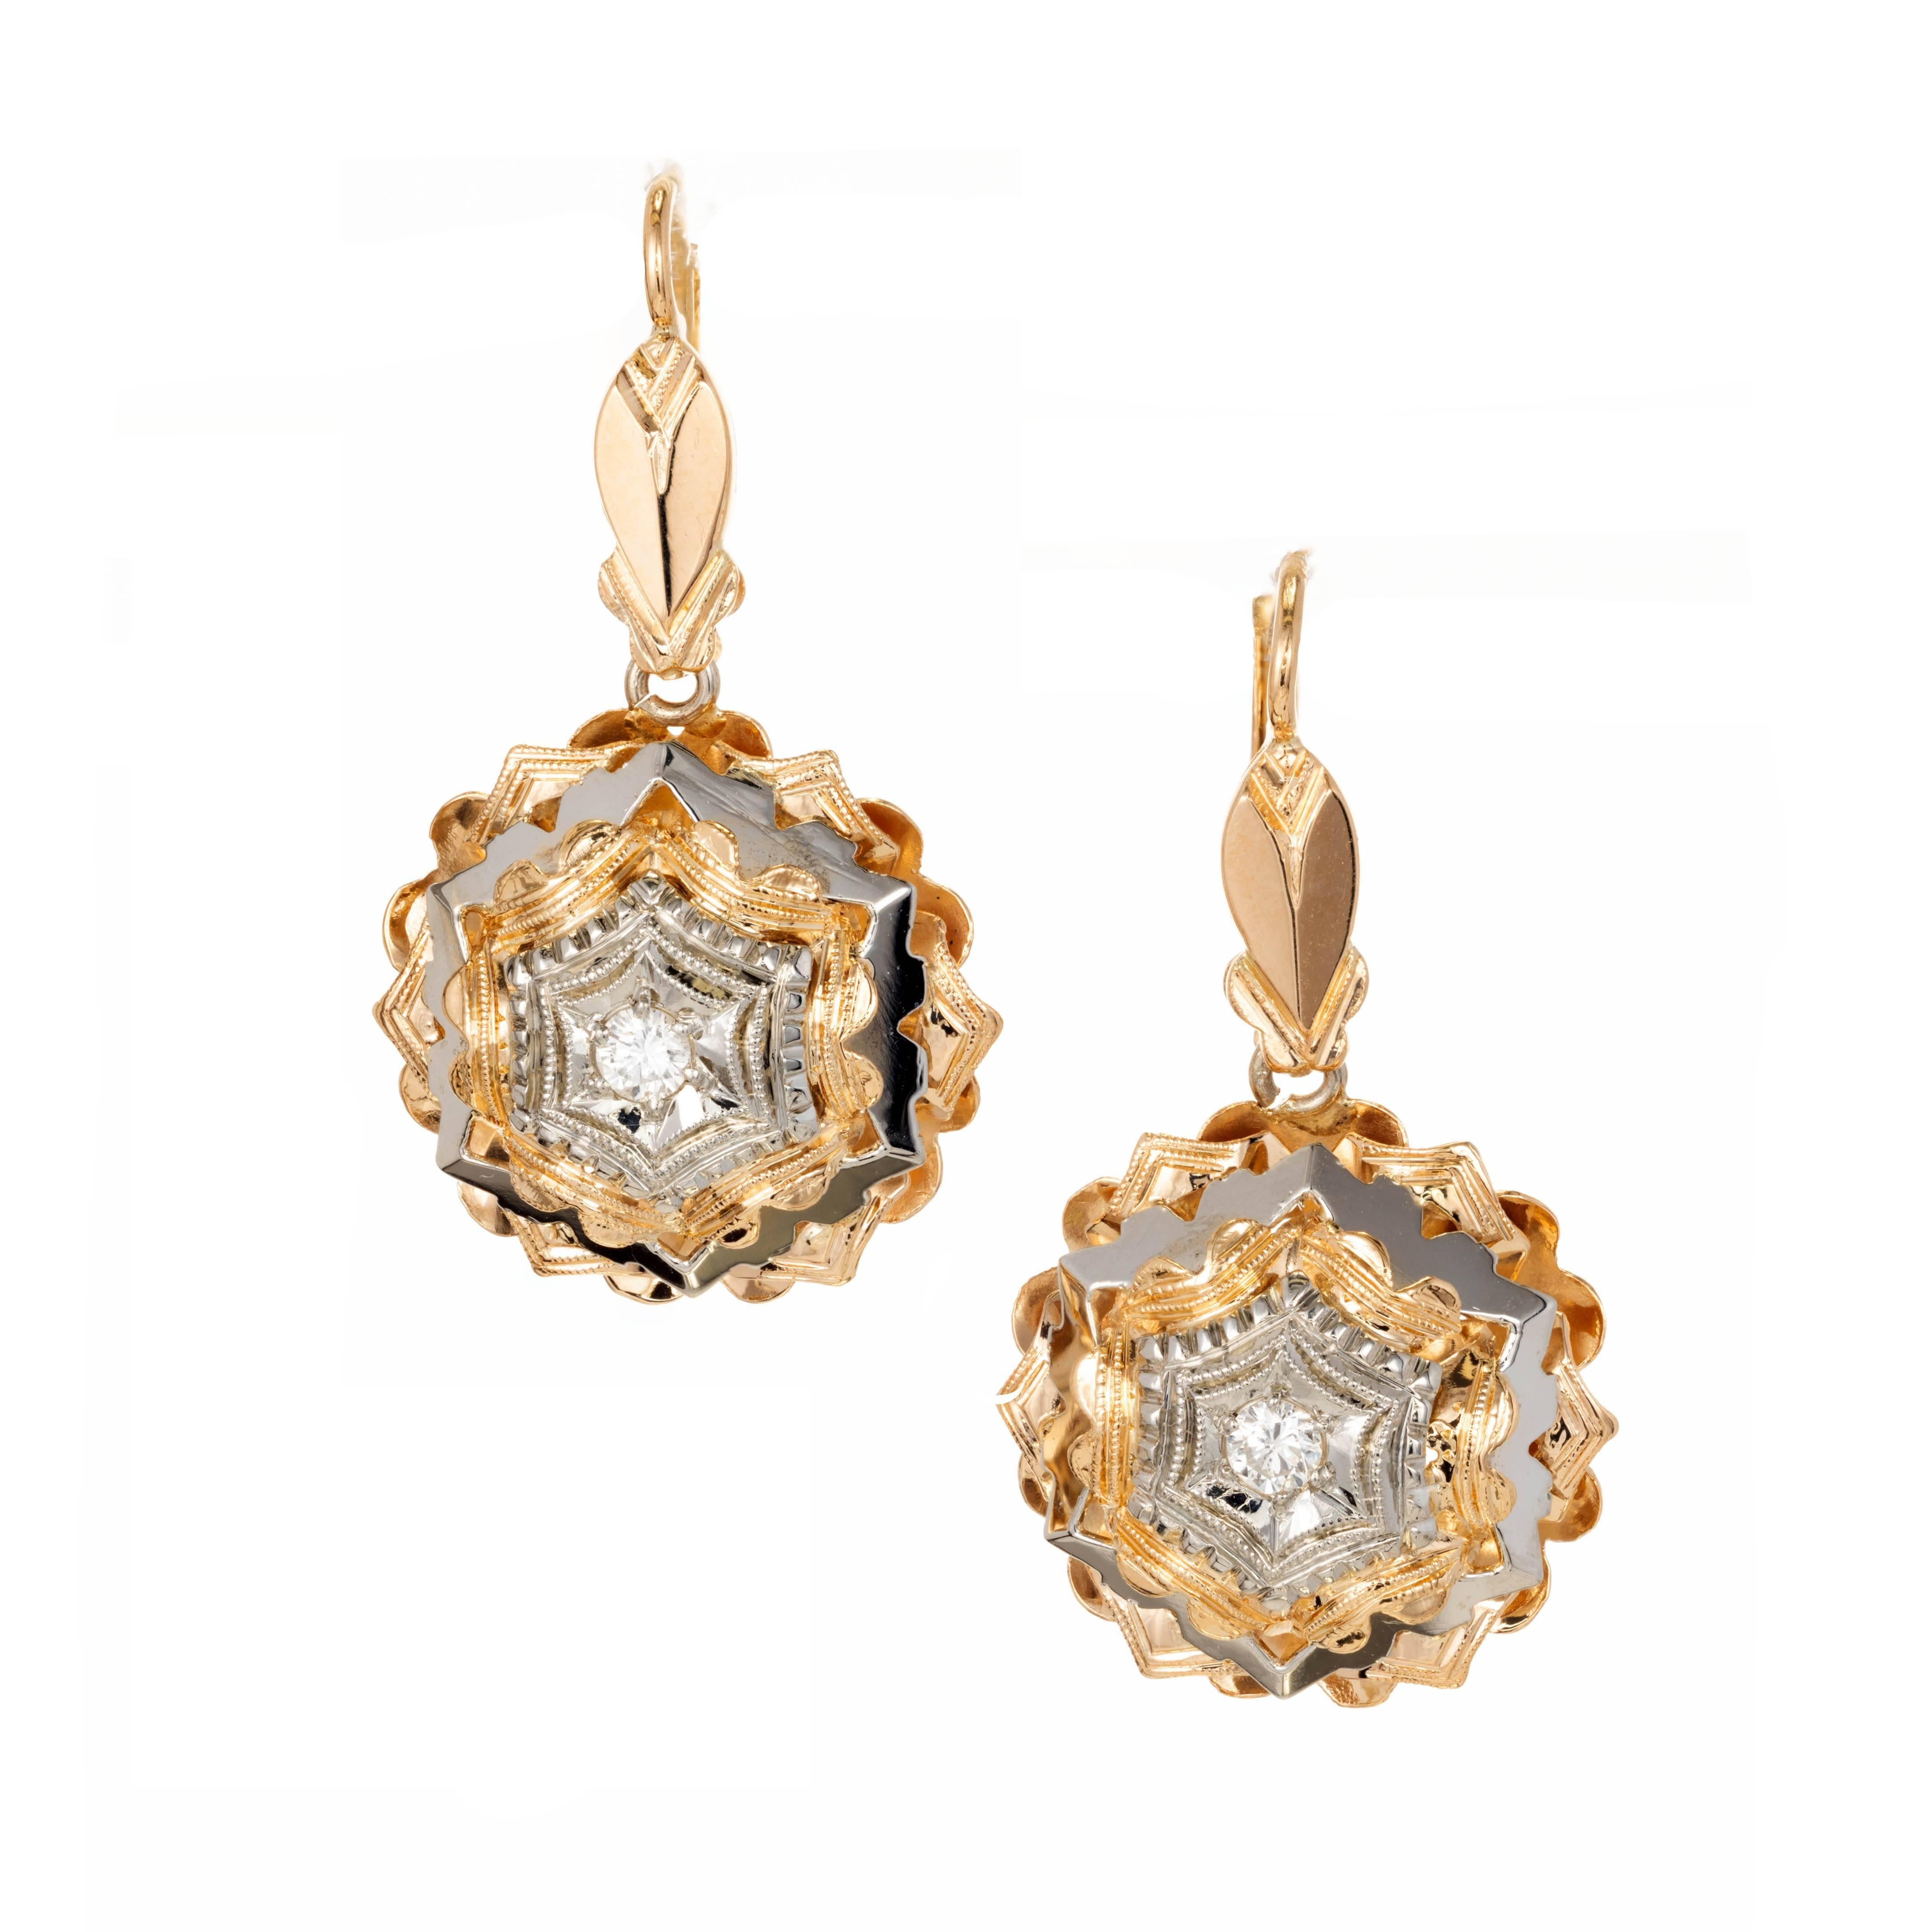 1af890eb47aab6 Diamond Micro Pave Rose Gold Dangle Earrings For Sale at 1stdibs